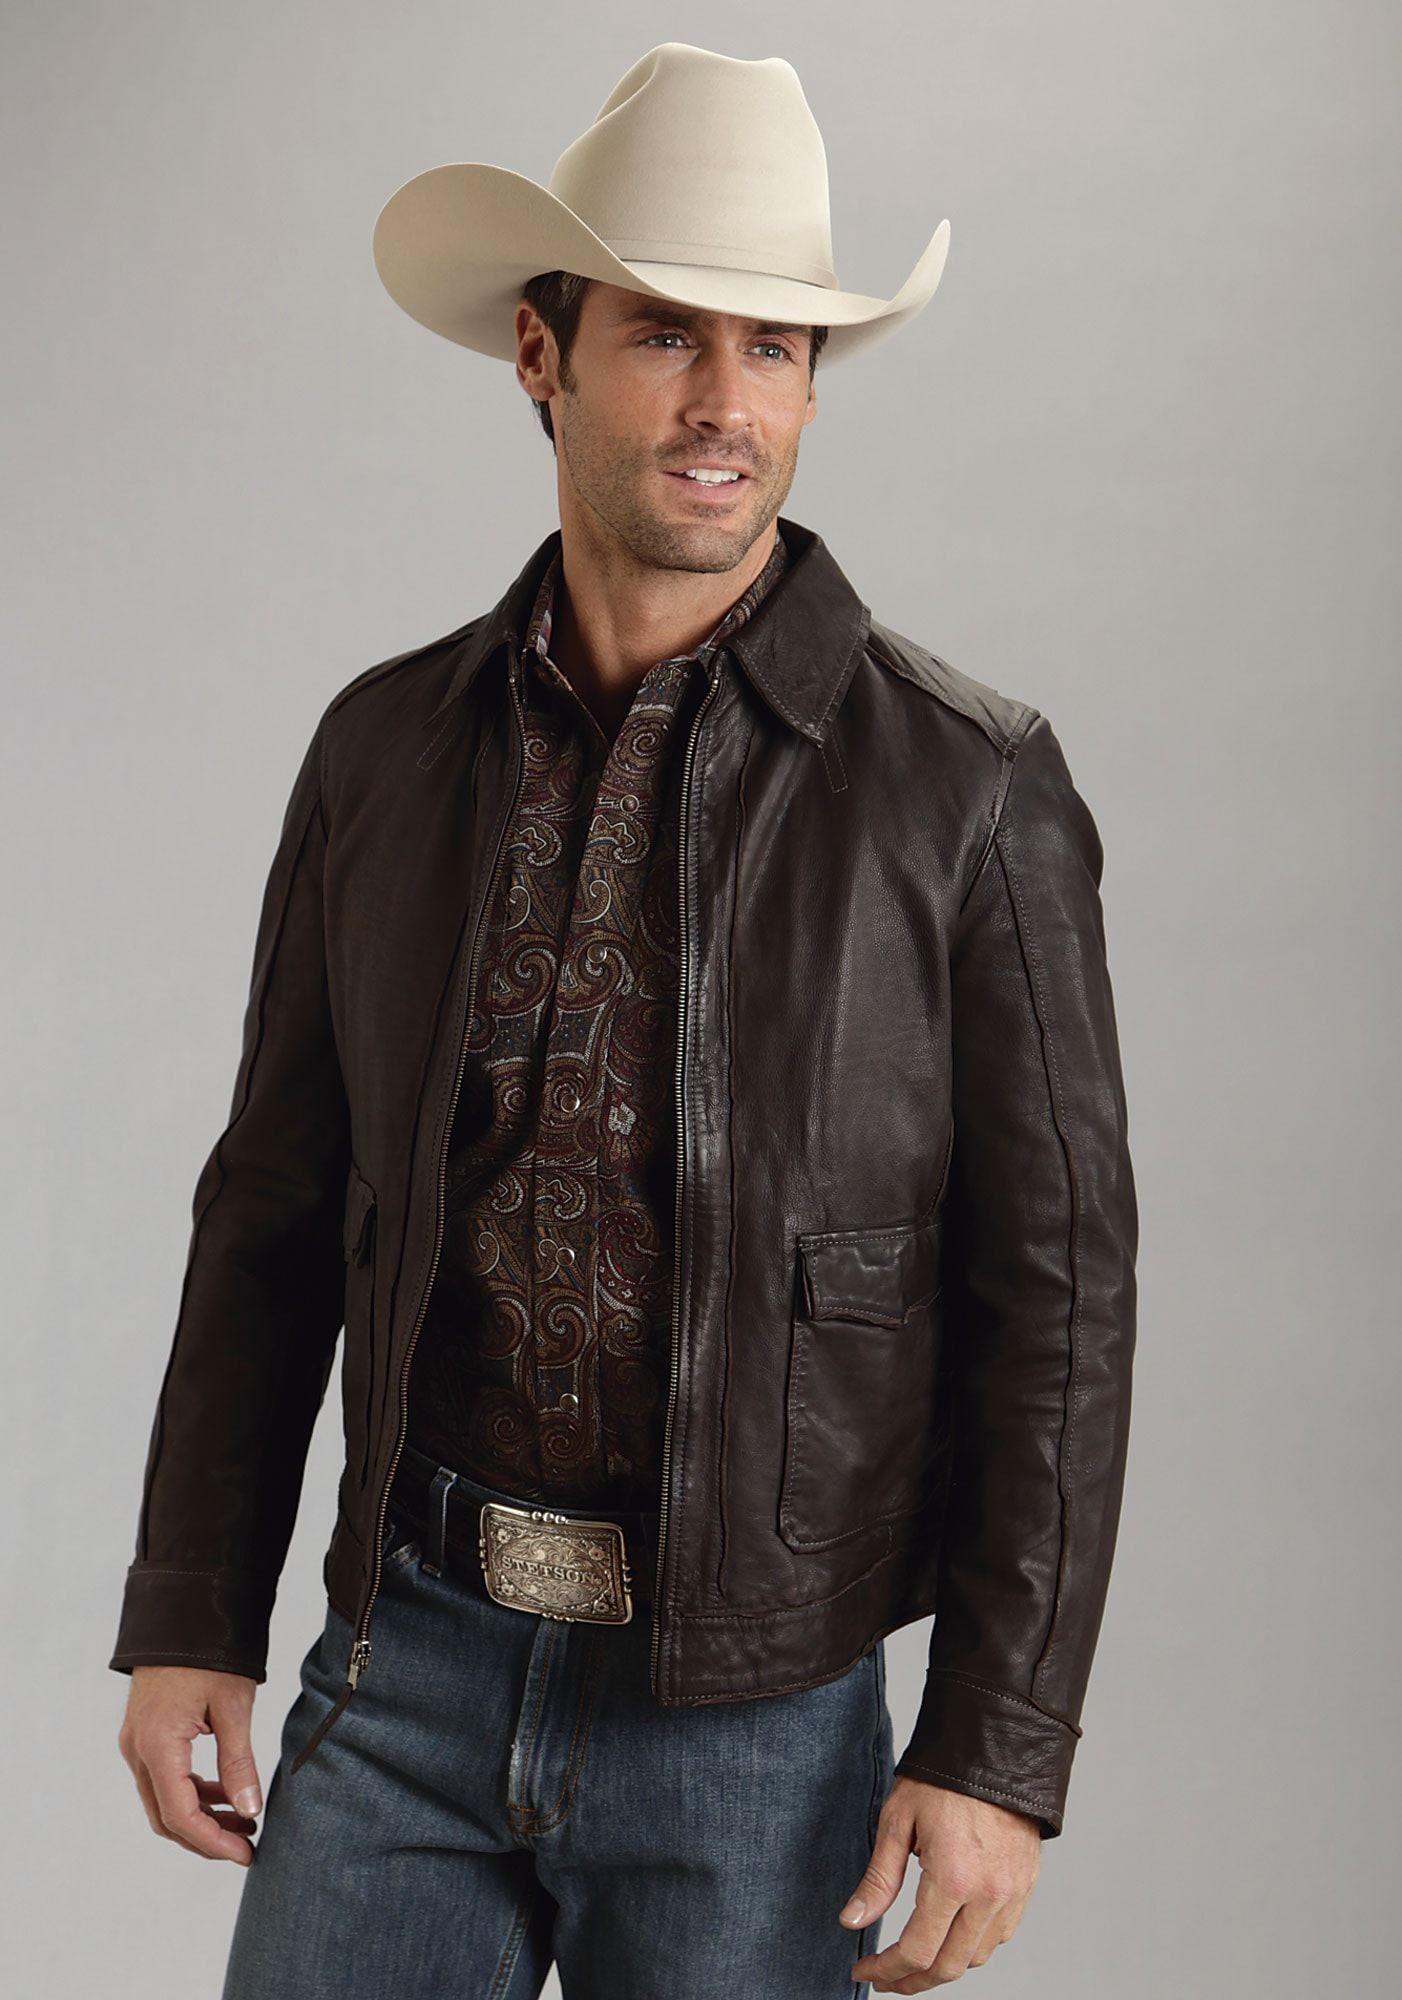 Stetson Mens Brown Butter Soft Leather Jacket Western Zip Front Mens Outerwear Jacket Cowboy Outfit For Men Leather Jacket Men [ 2000 x 1402 Pixel ]